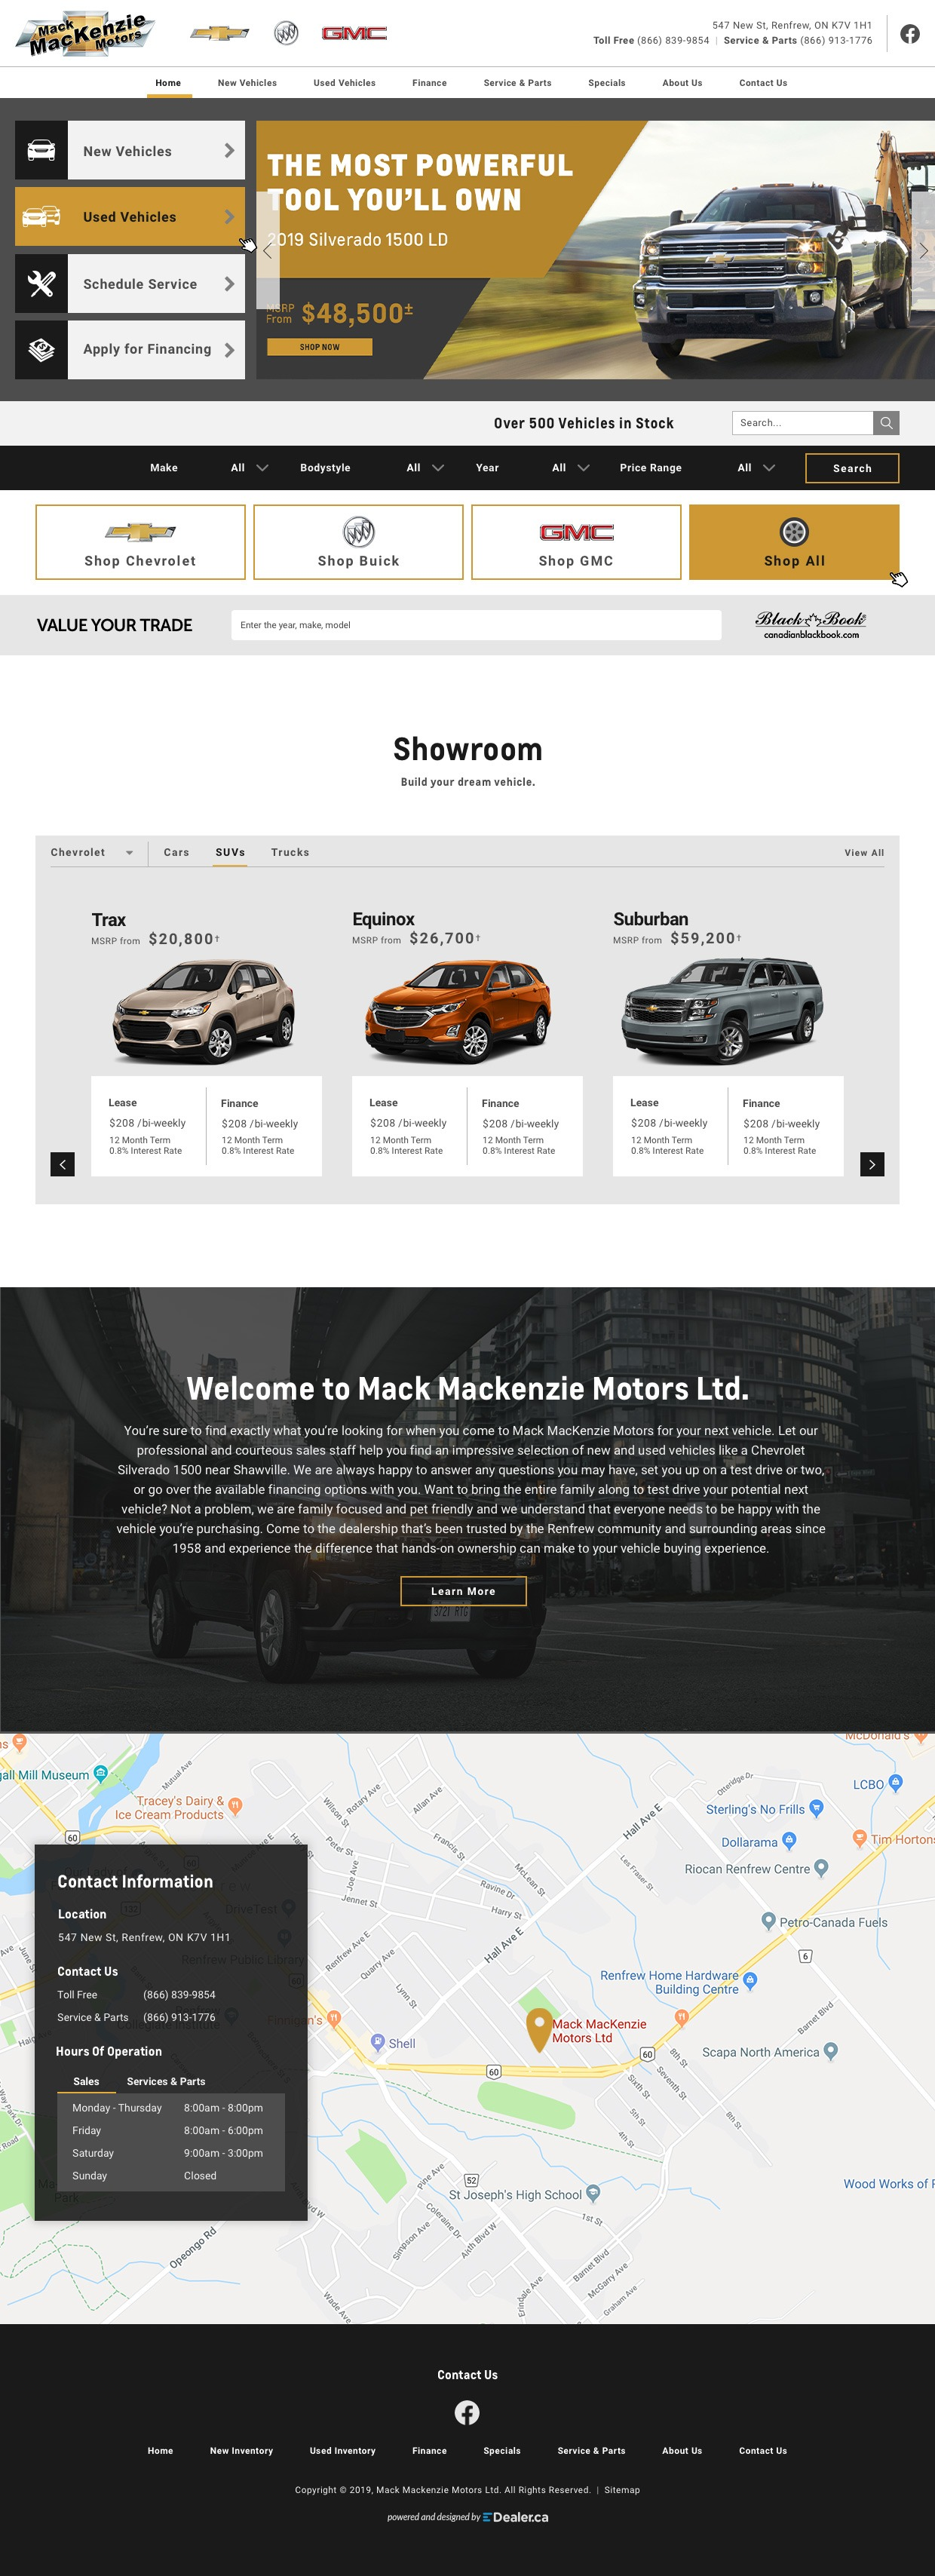 Mack MacKenzie Motors Limited